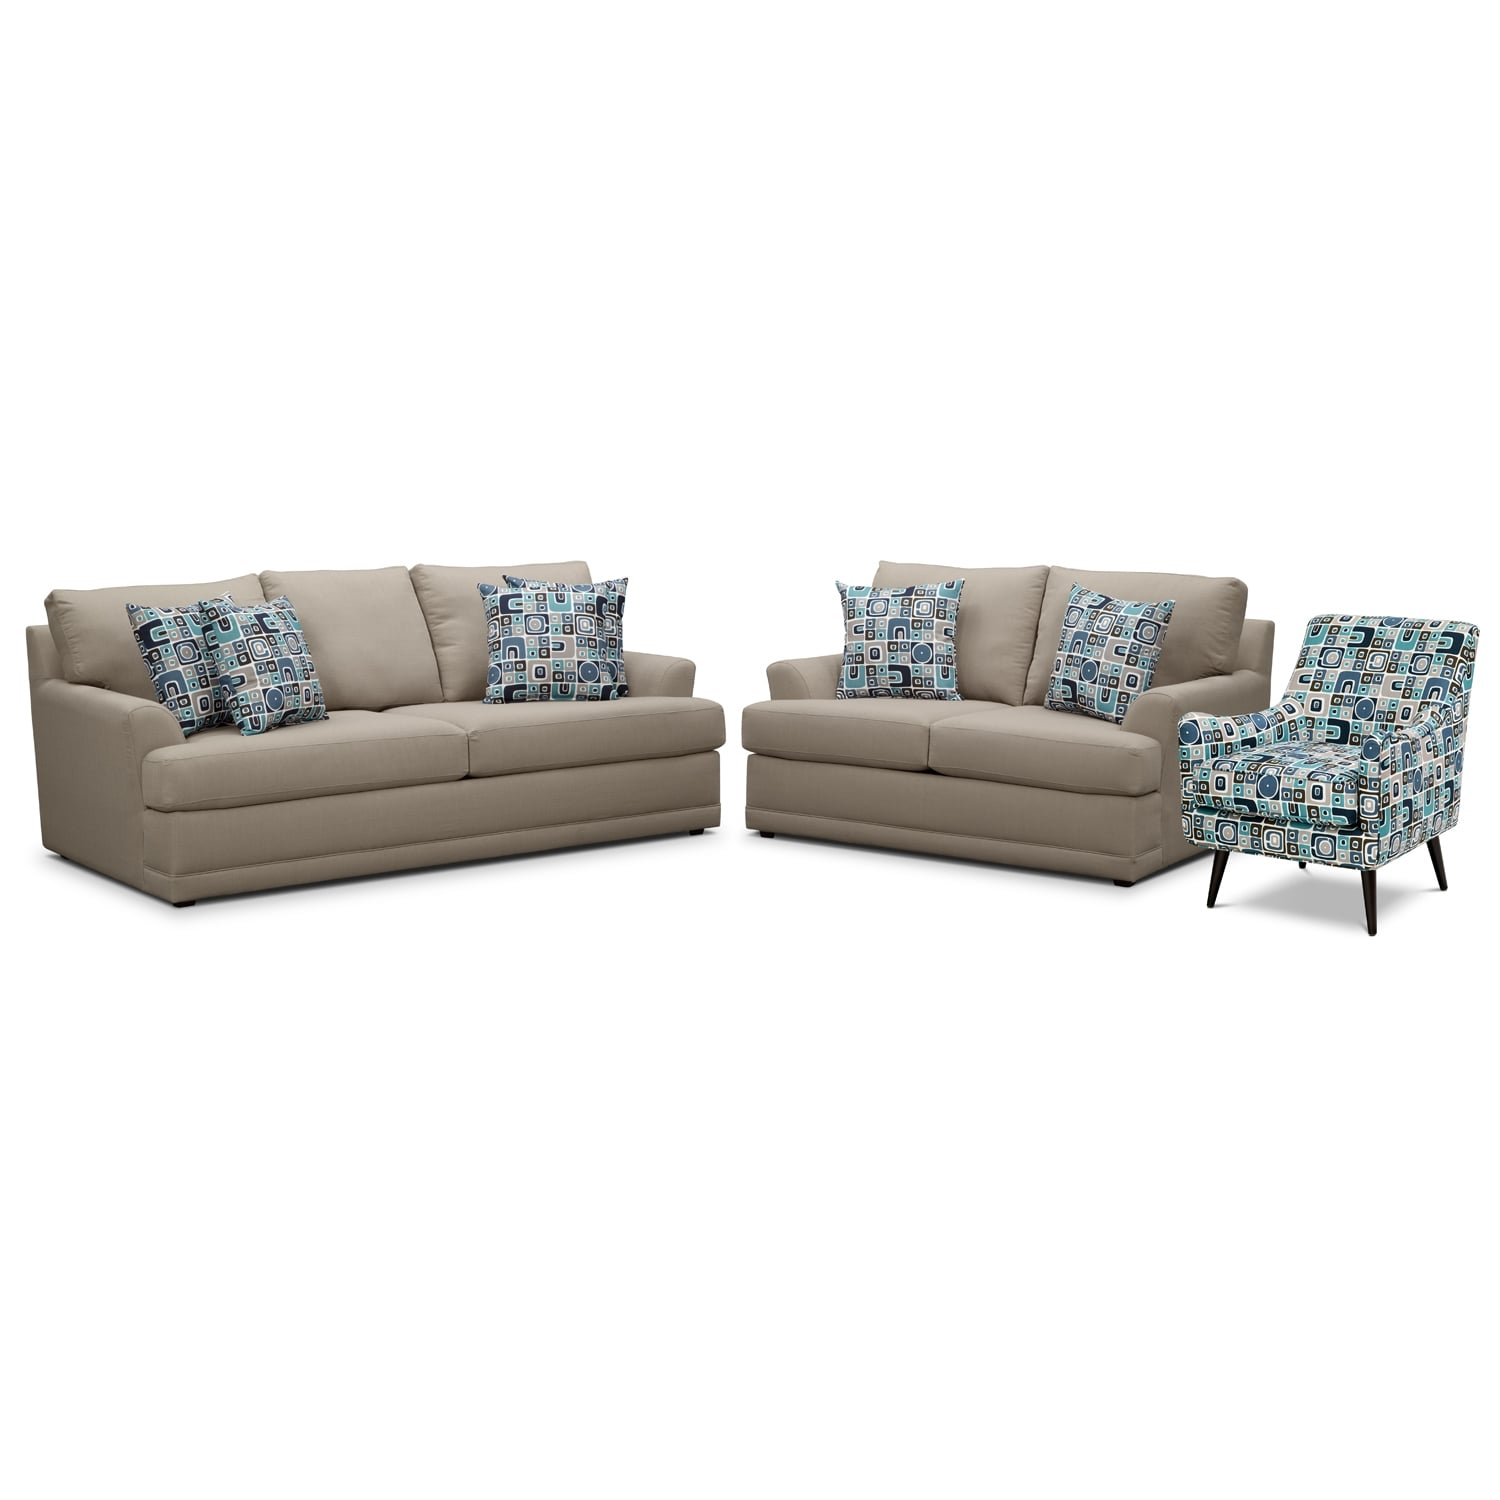 Living Room Furniture - Kismet 3 Pc. Sleeper Living Room with Accent Chair and Innerspring Mattress - Gray